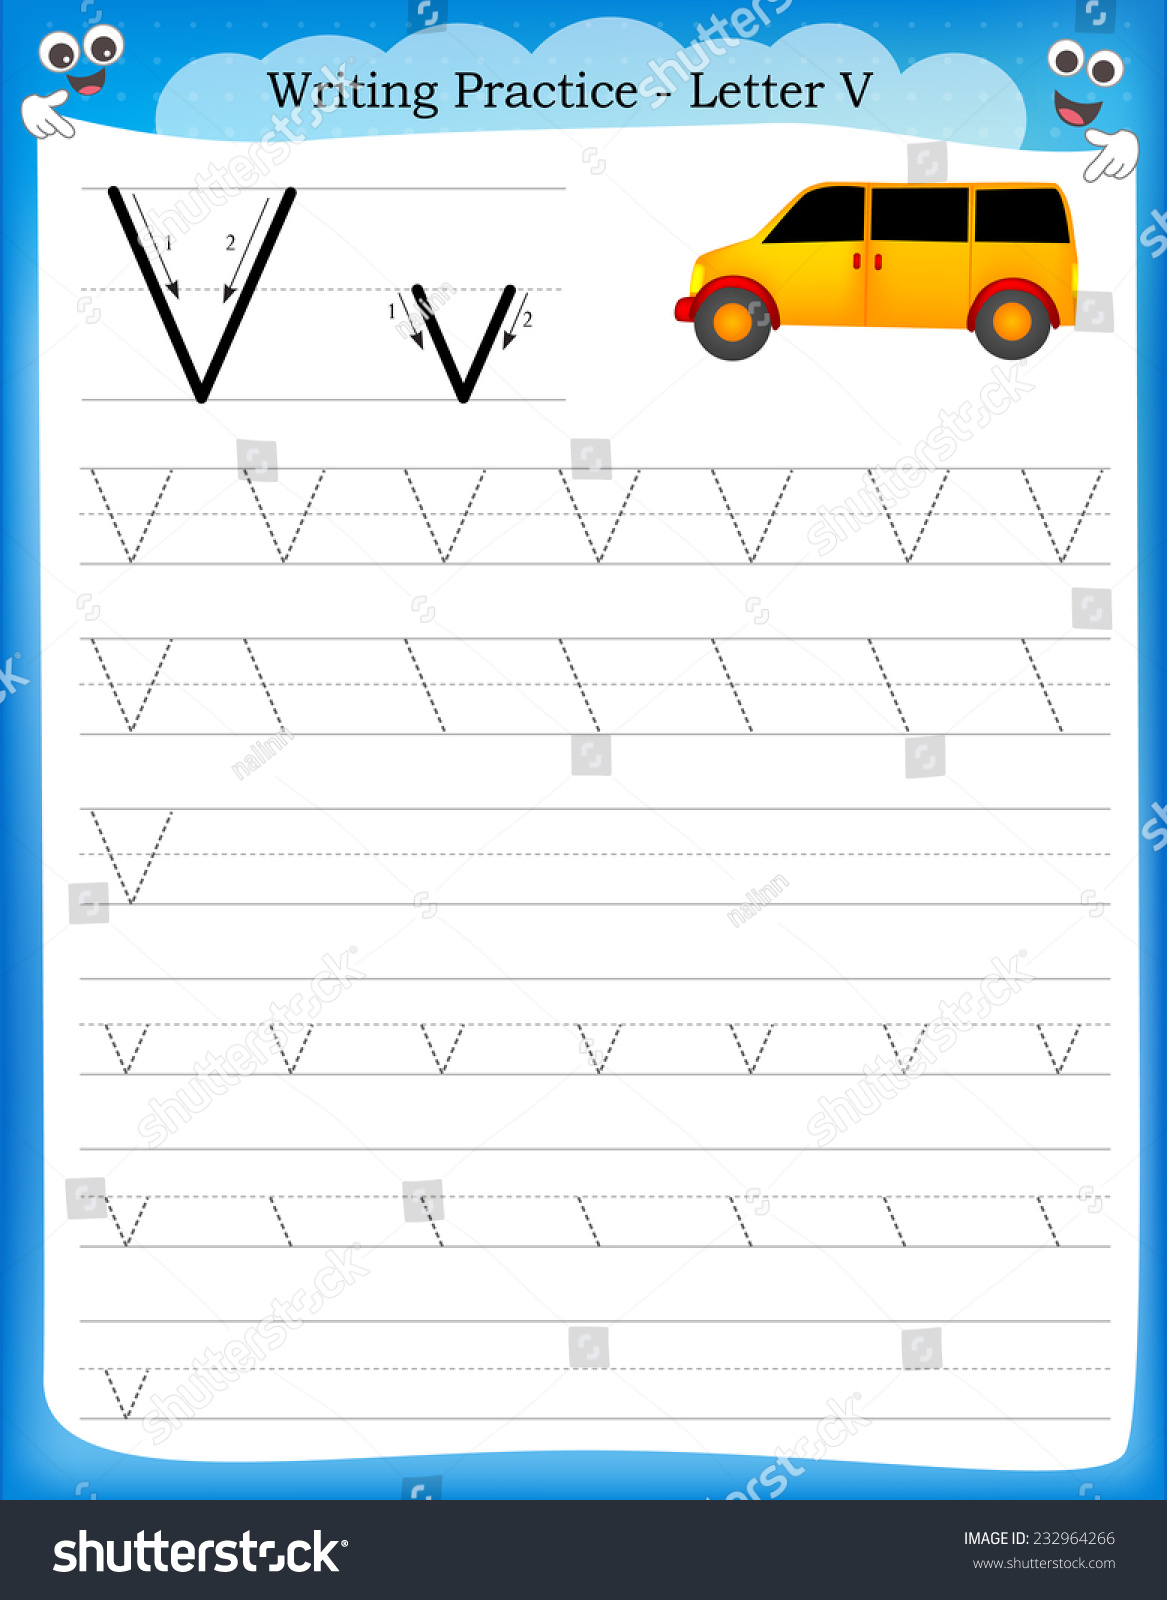 Writing Practice Letter V Printable Worksheet With Clip Art For Preschool Kindergarten Kids To